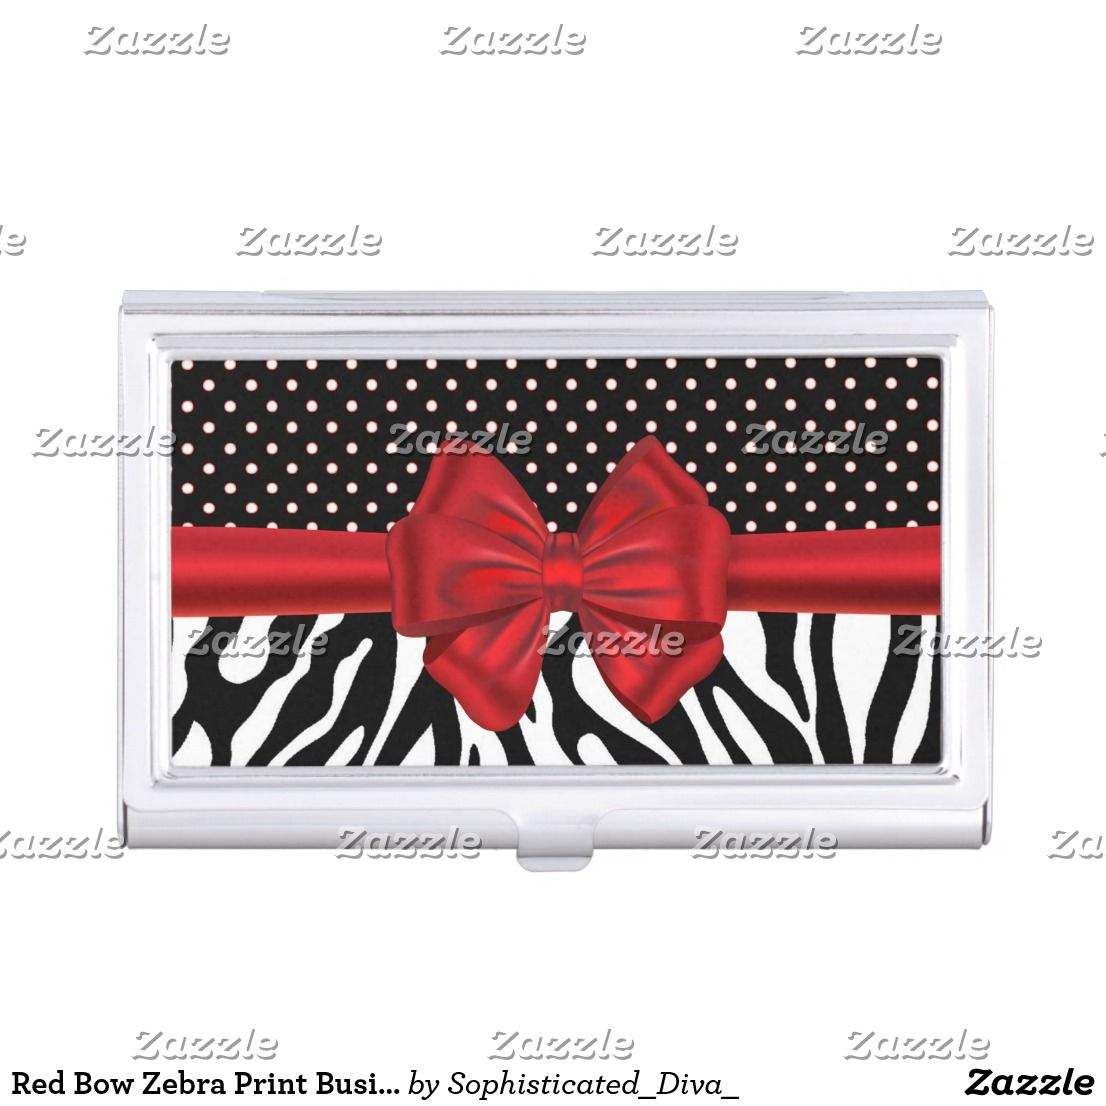 Red Bow Zebra Print Business Card Holder | Zazzle | Pinterest